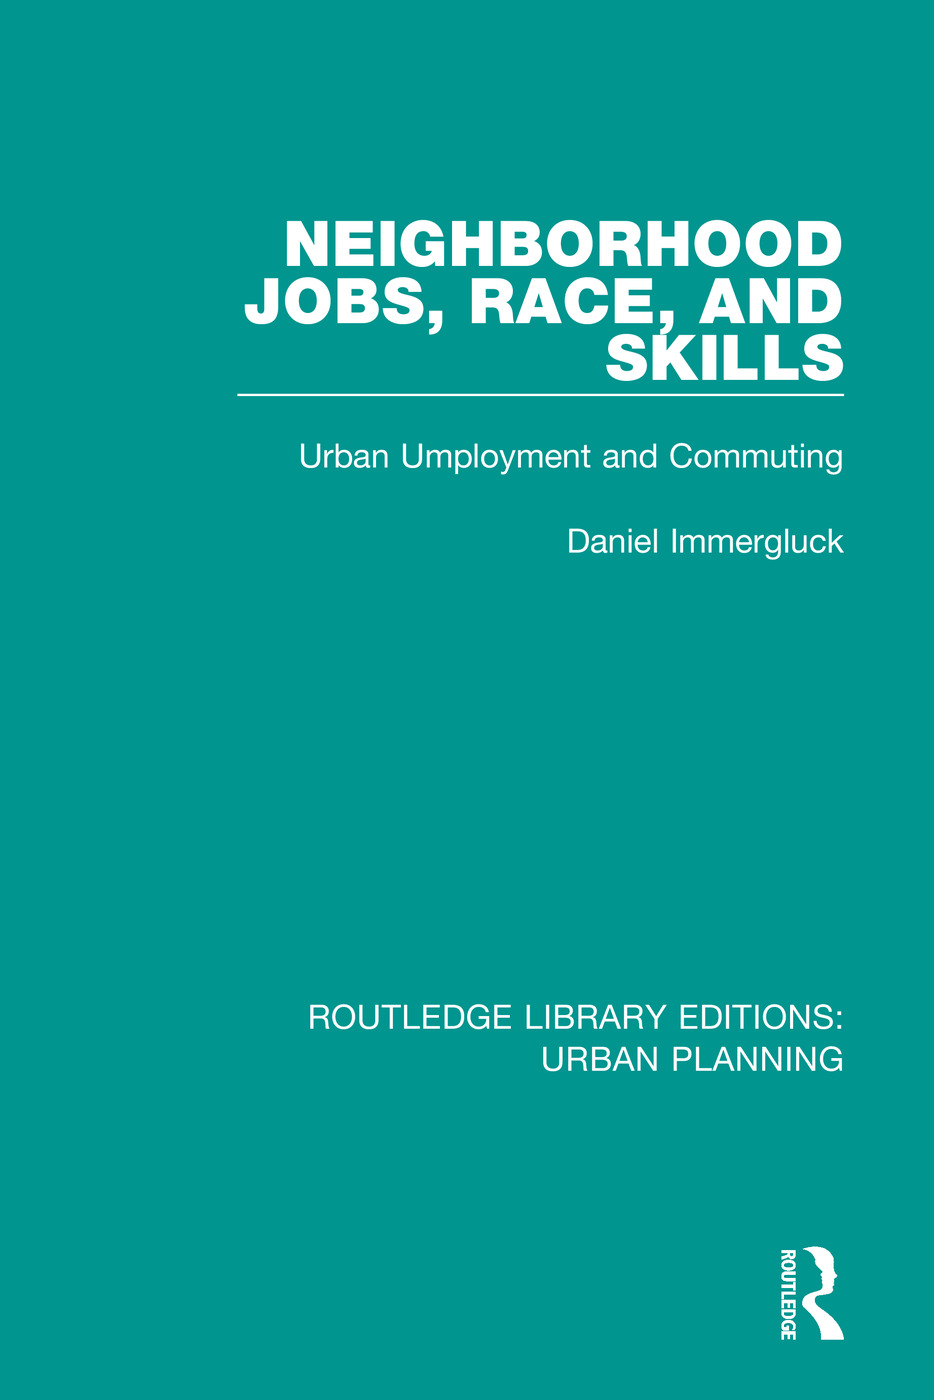 Neighborhood Jobs, Race, and Skills: Urban Employment and Commuting book cover